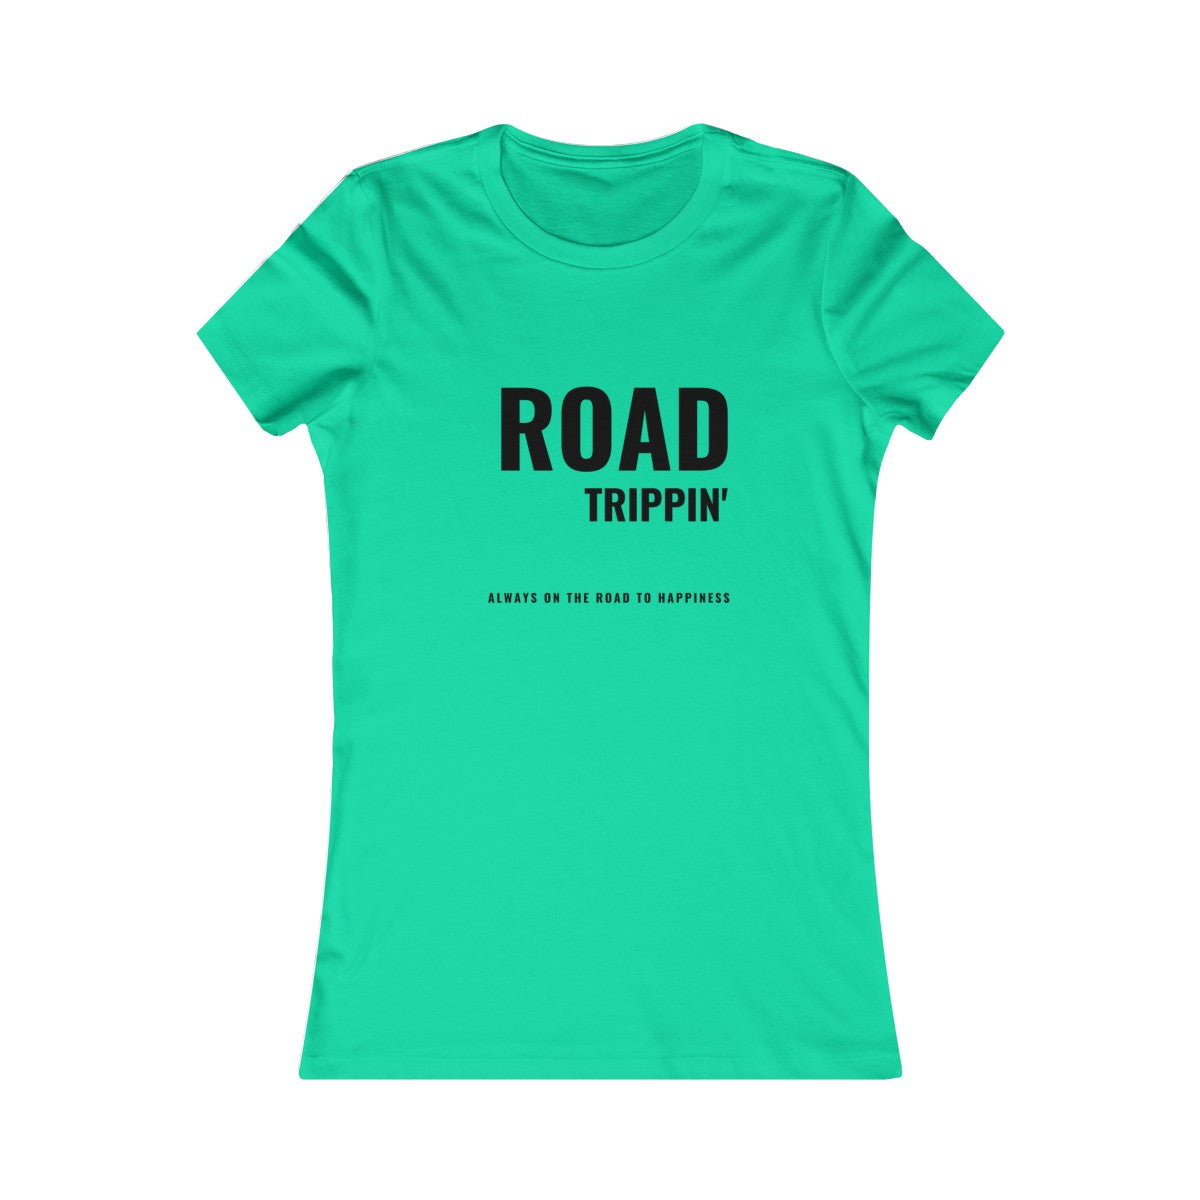 Women's Favorite Tee - The Nomad Style